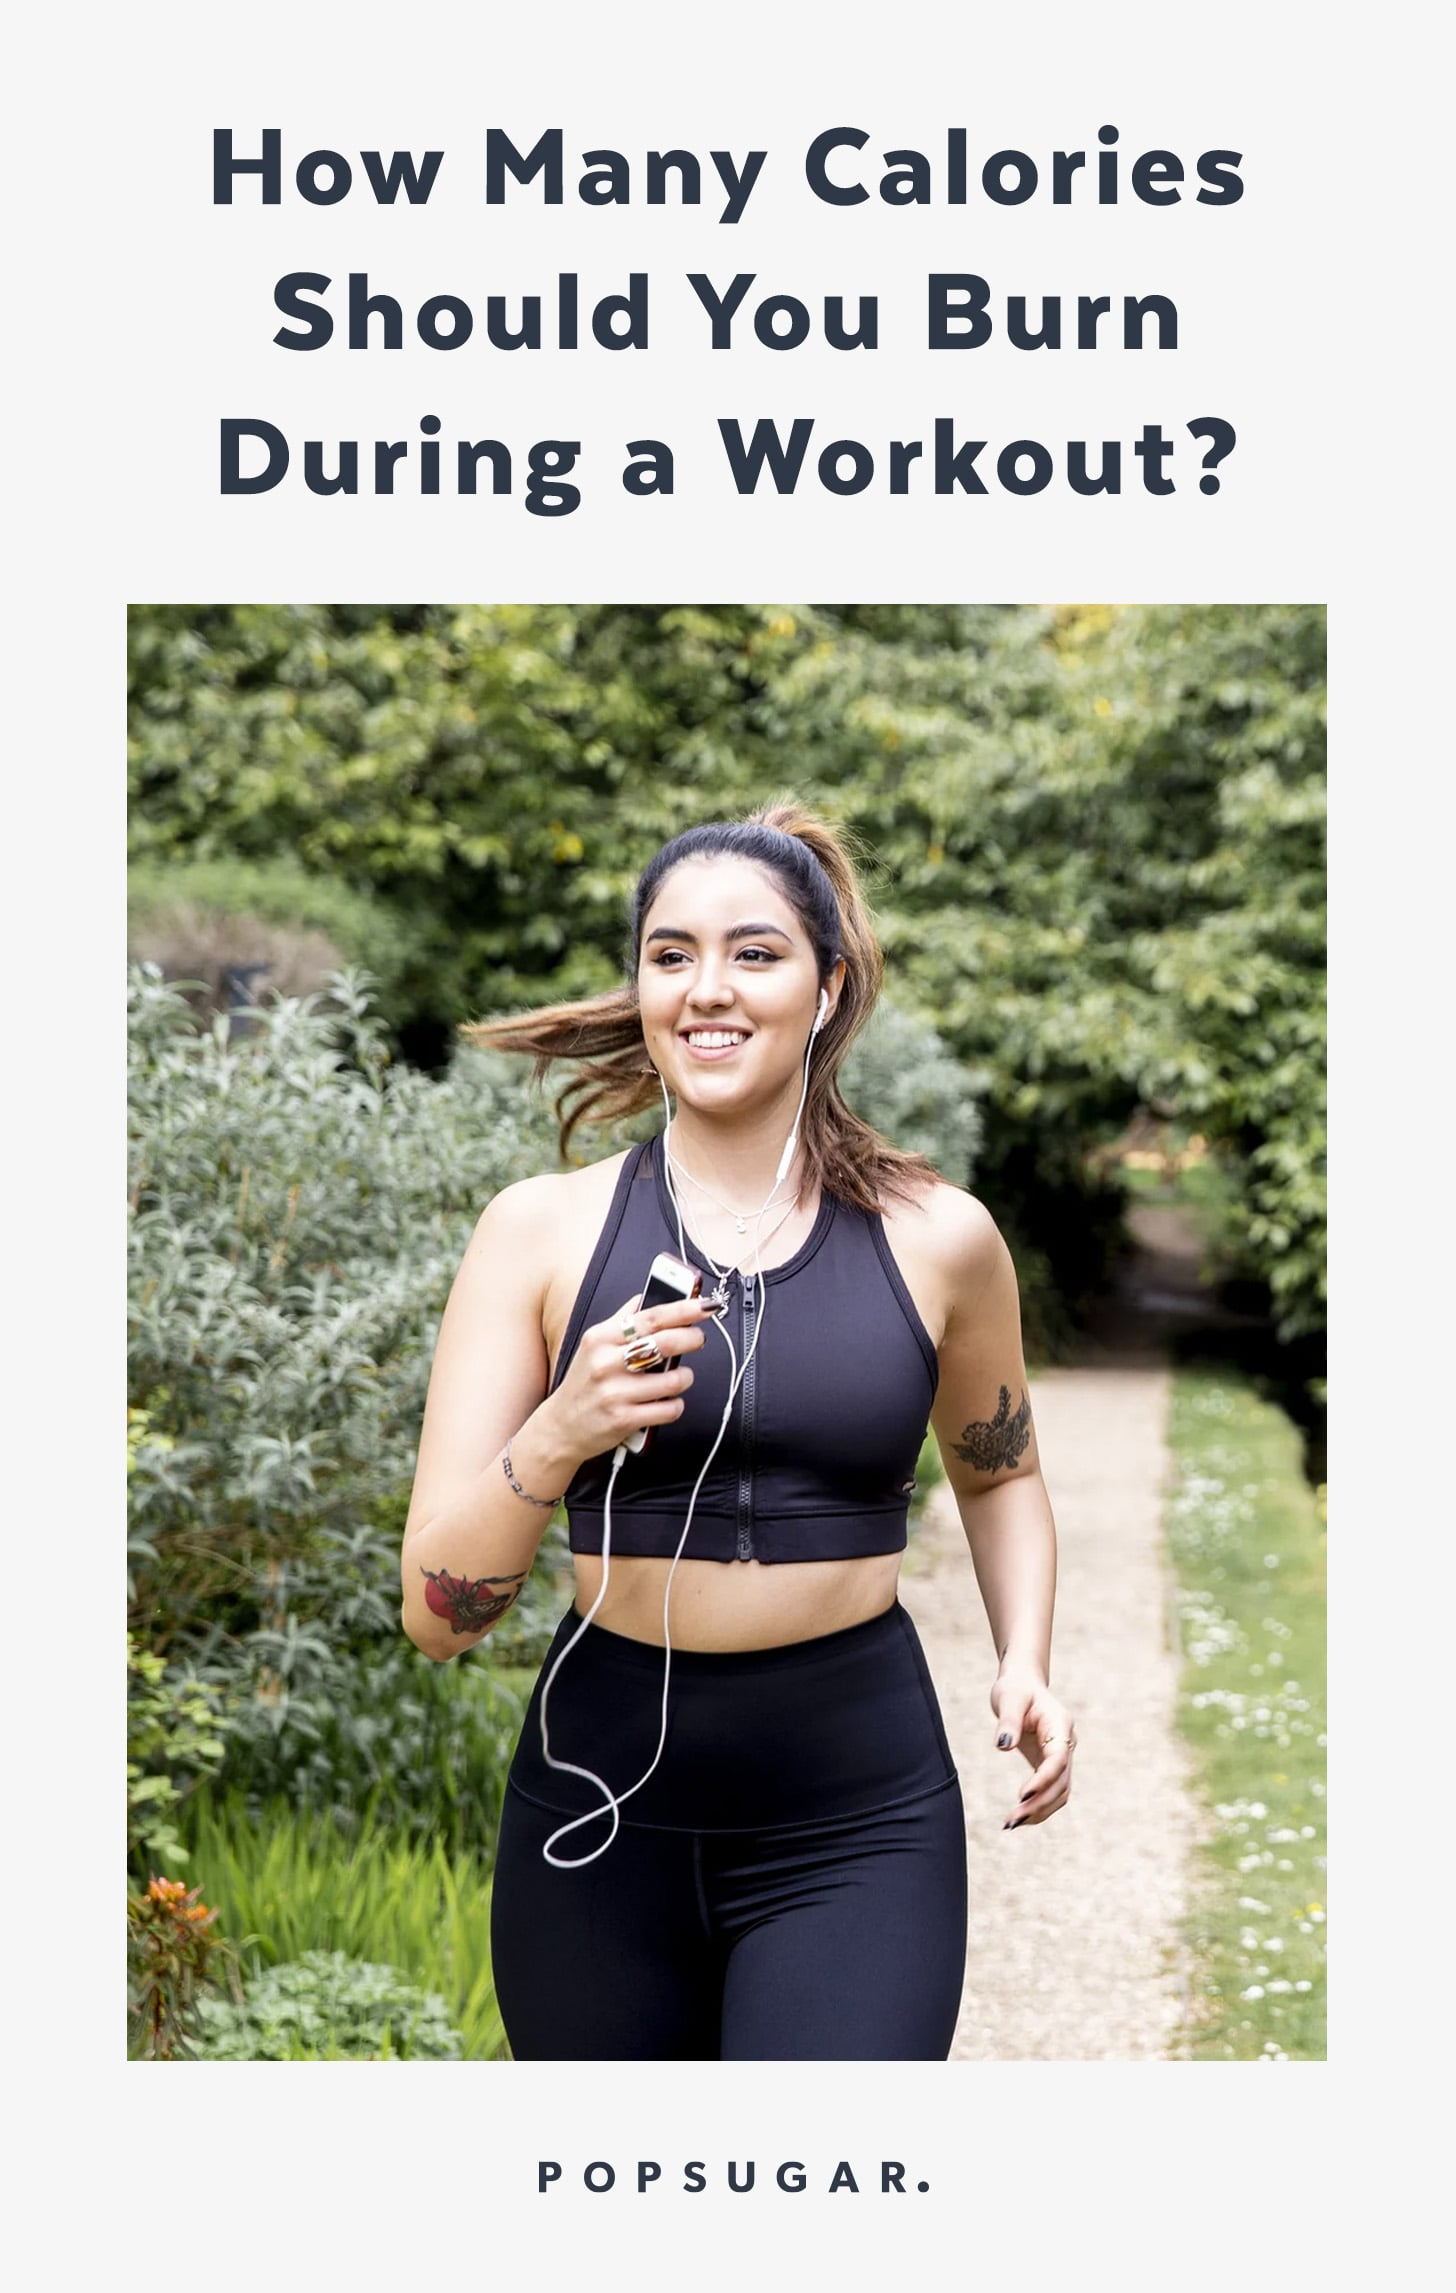 How Many Calories Should I Burn During a Workout? | POPSUGAR Fitness